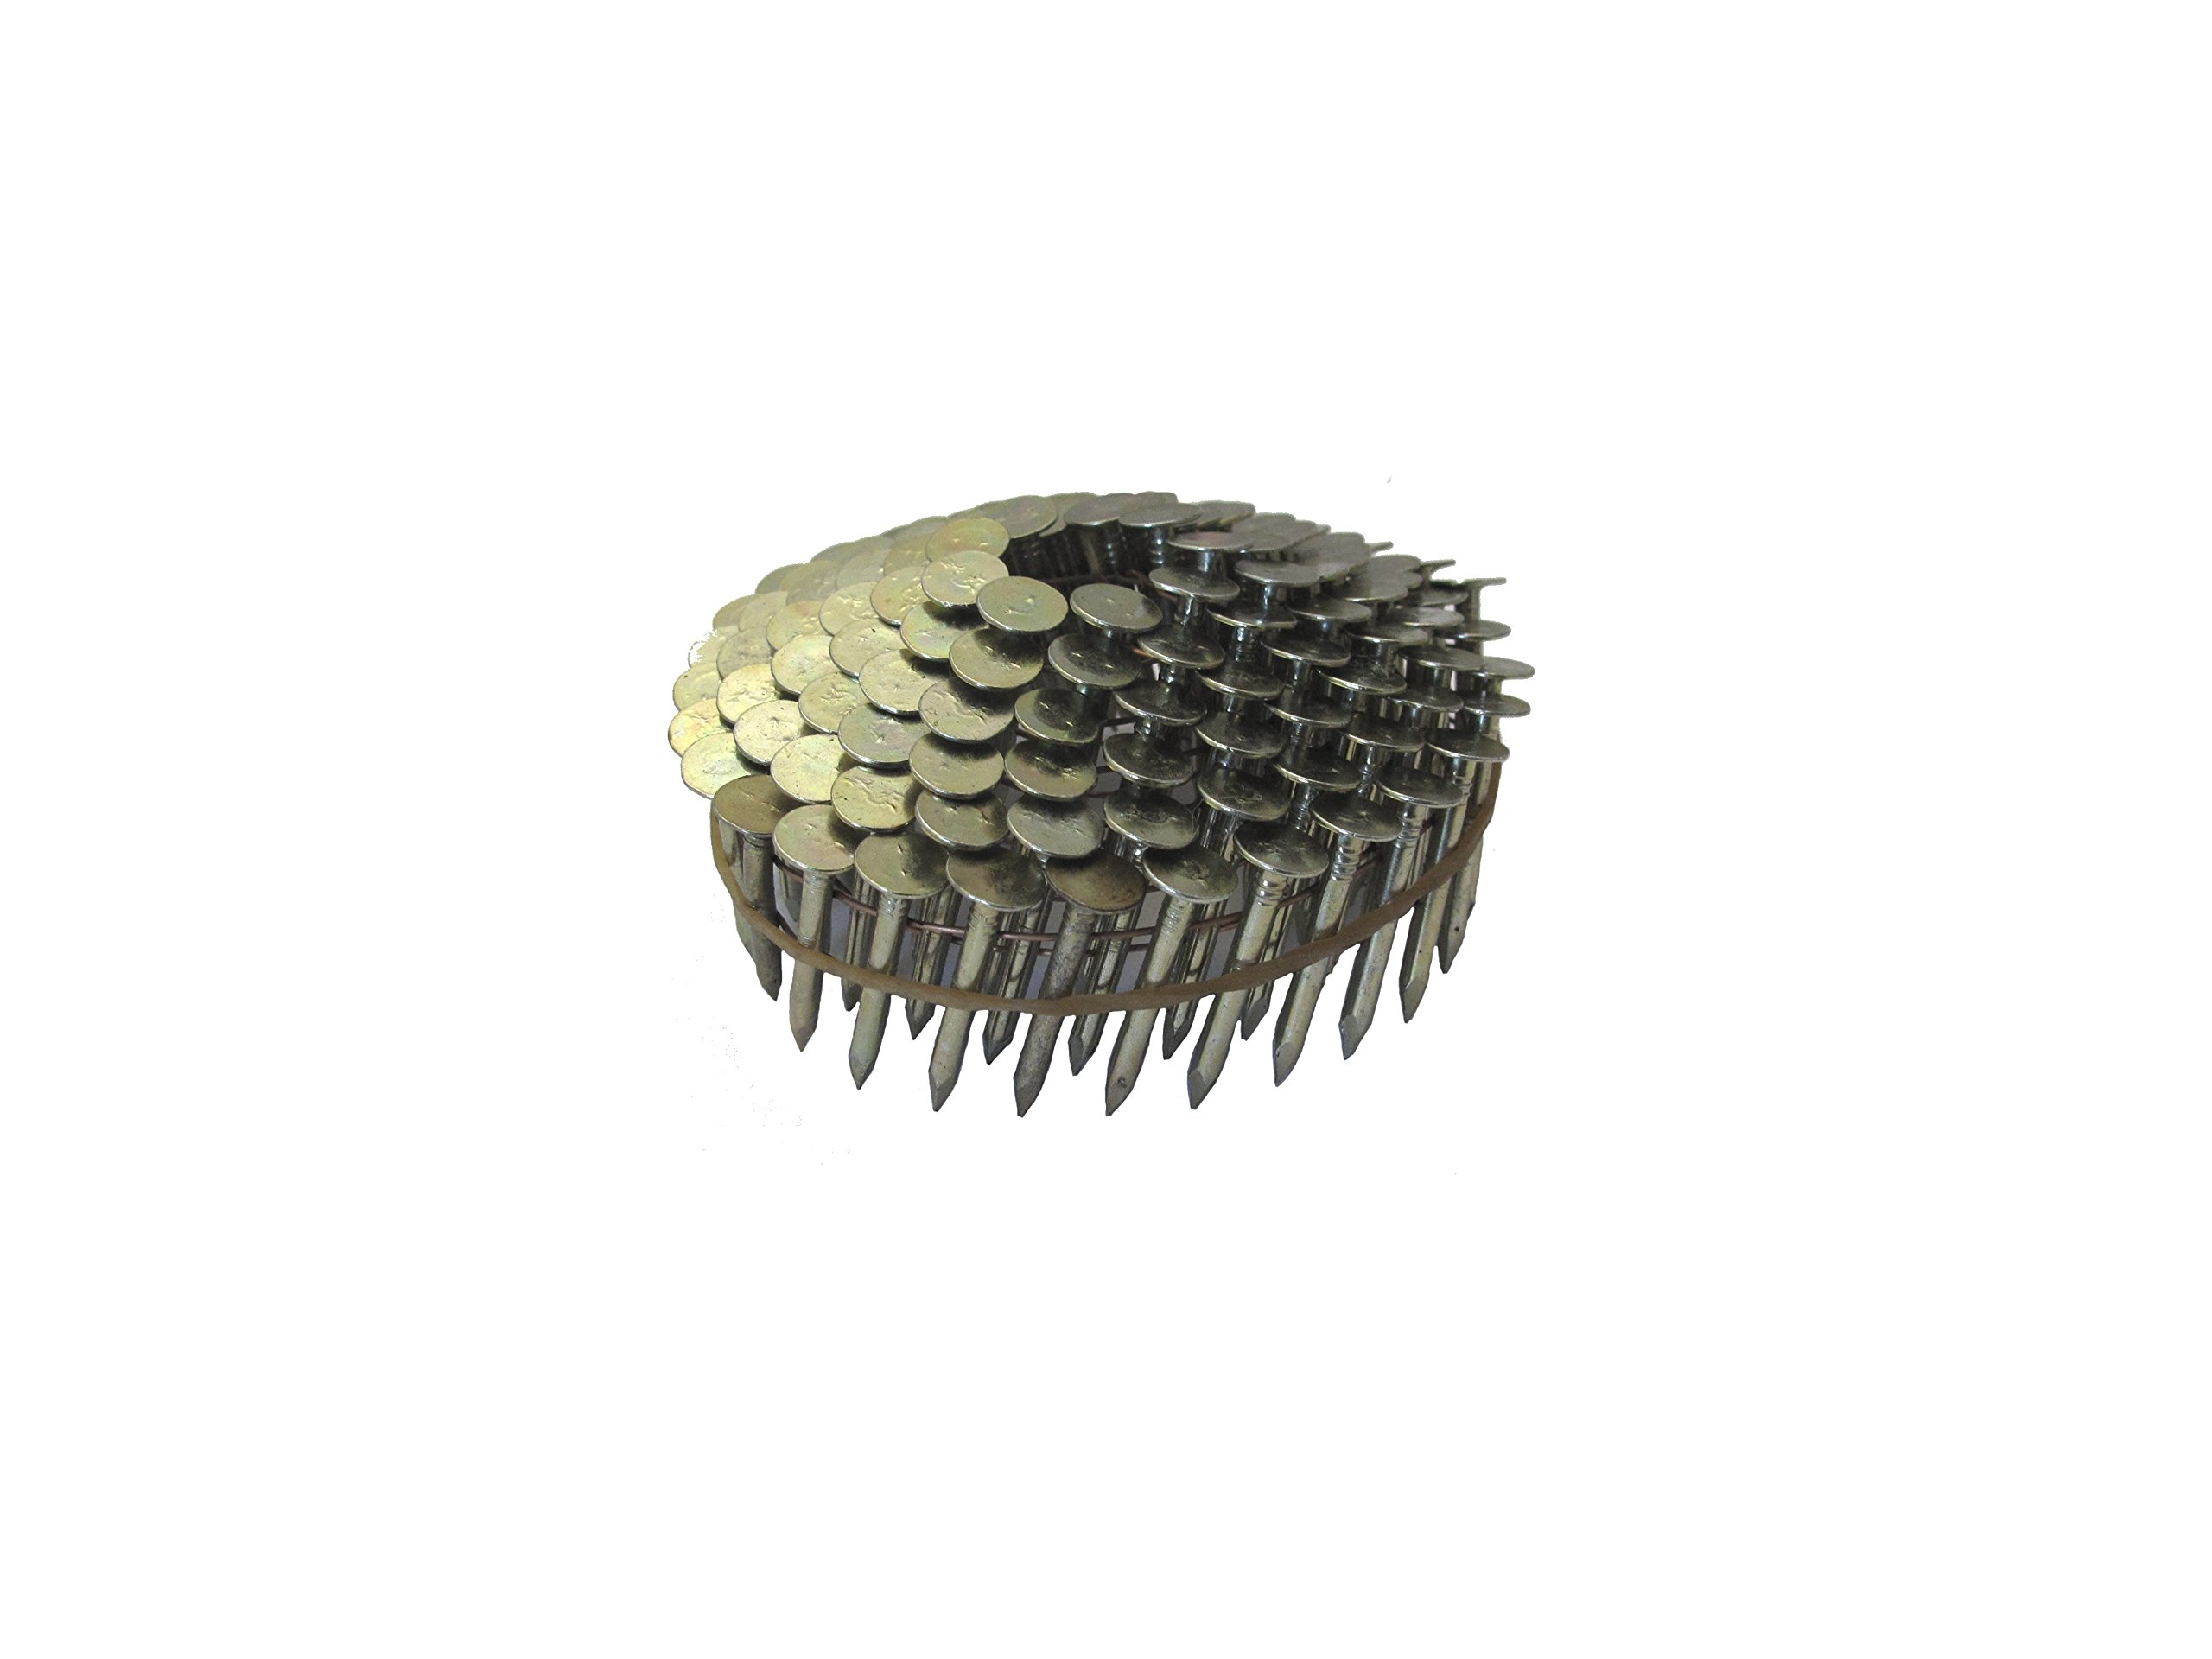 Grip-Rite 1-1/4-Inch 15? Electro-GALVANIZED Coil Roofing Nails, Smooth Shank, 600 nails per tub